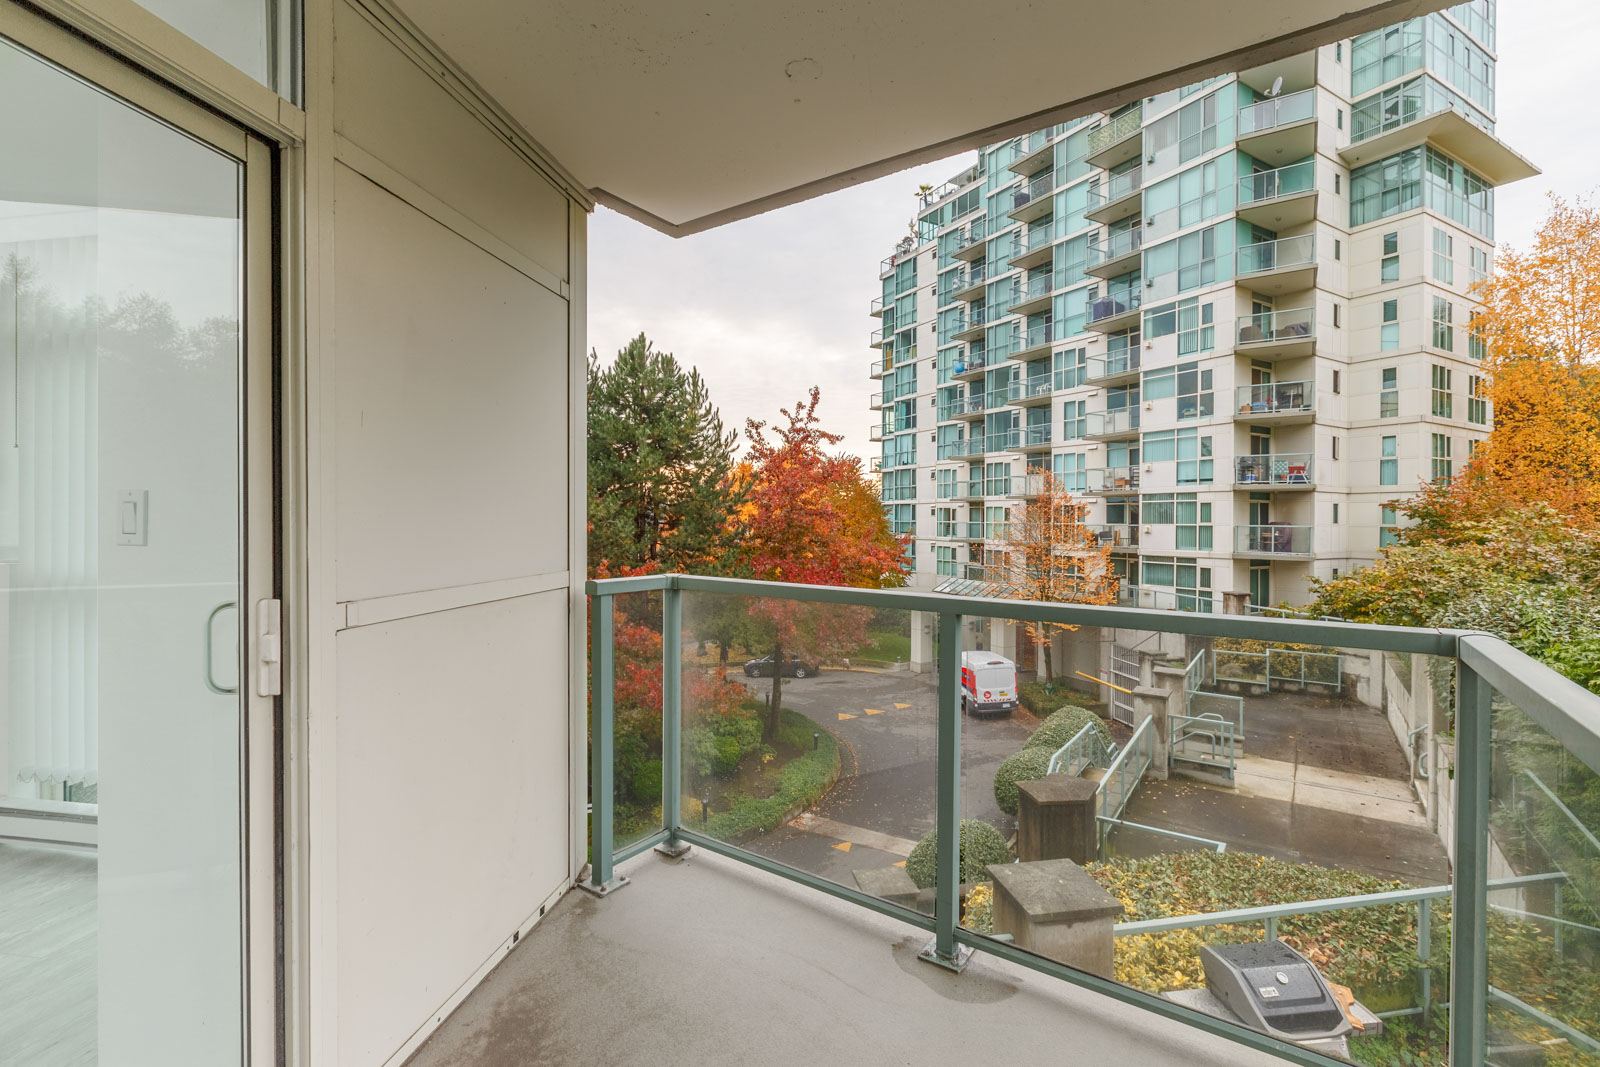 Balcony with view of adjacent building from River Dance building in River District Vancouver rental condo property